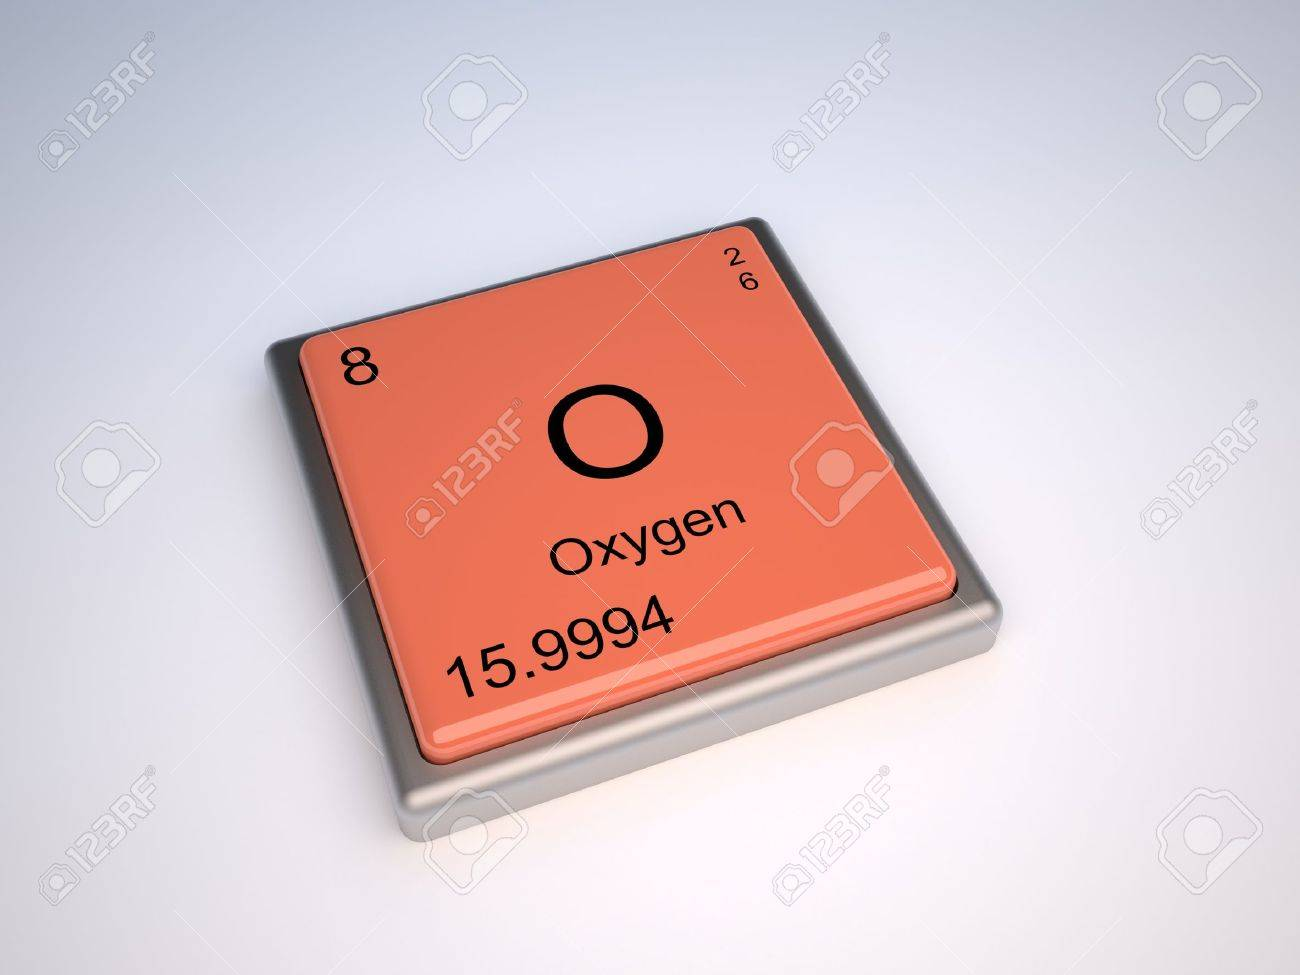 Oxygen chemical element of the periodic table with symbol o oxygen chemical element of the periodic table with symbol o iupac stock photo 9224101 buycottarizona